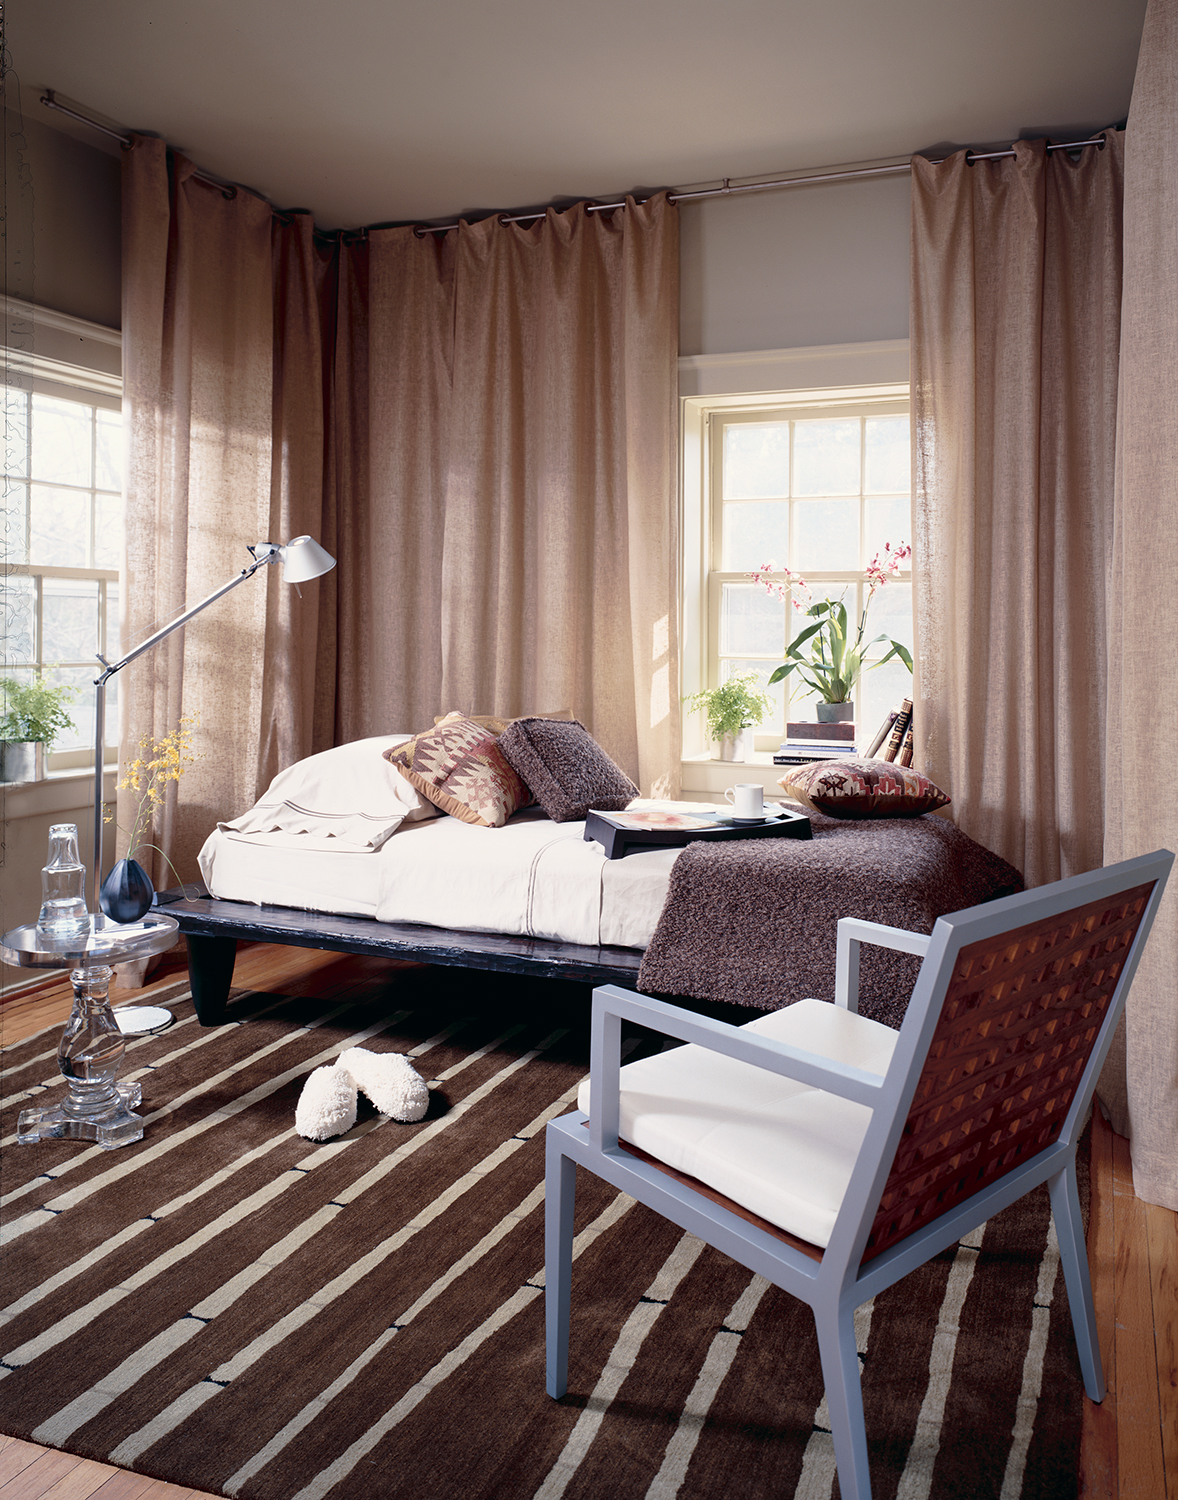 ASID-Showhouse-Gardener's-Bedroom.-Dunlap-Design-Group.-Photo-by-Beth-Singer..jpg